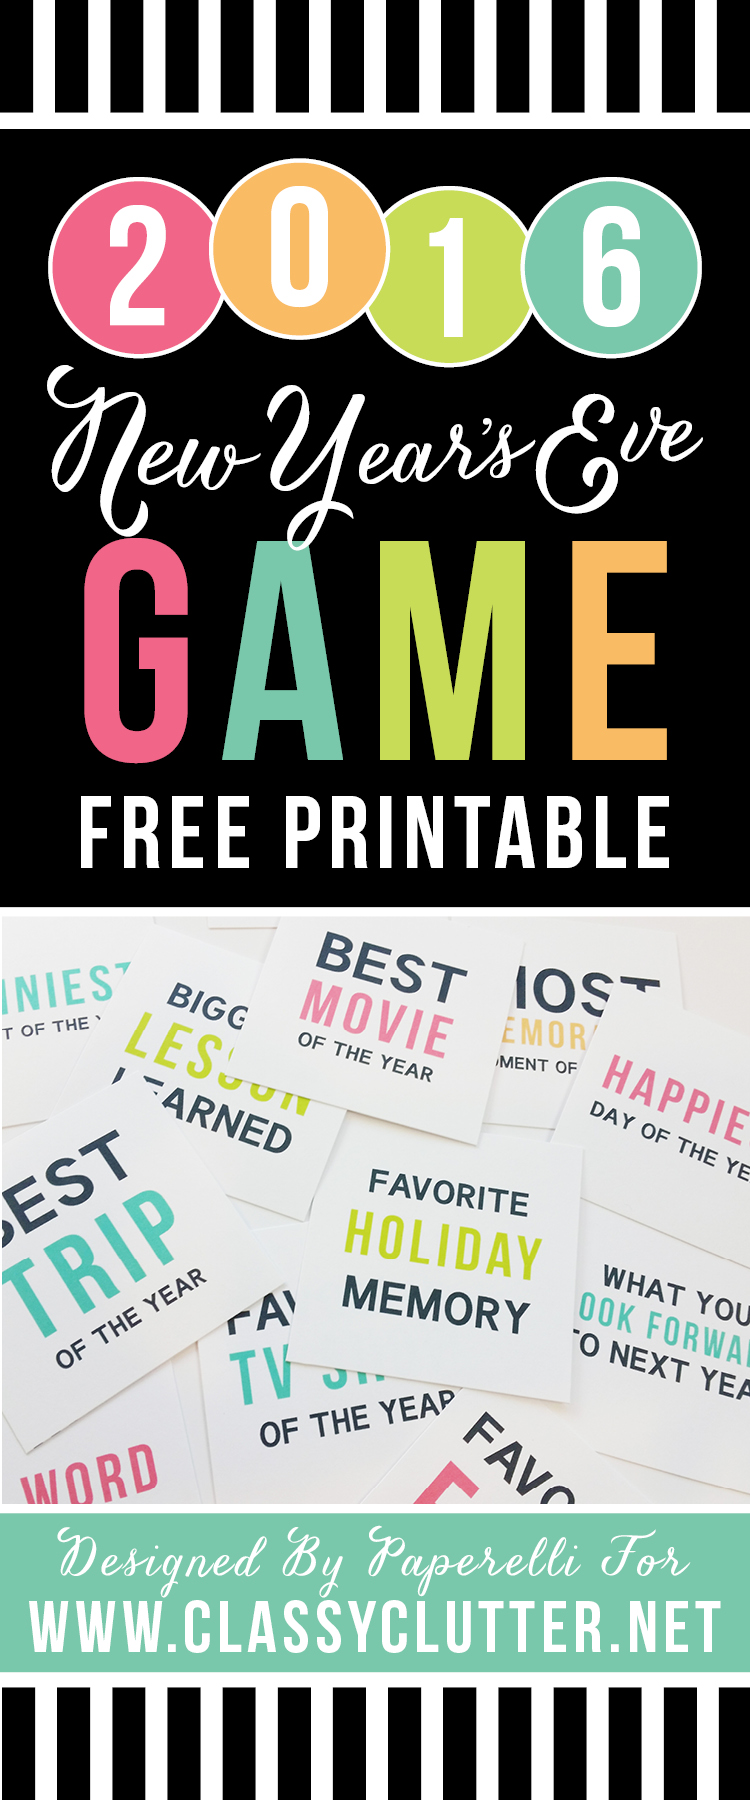 new years eve printable game by paperelli for classy clutter